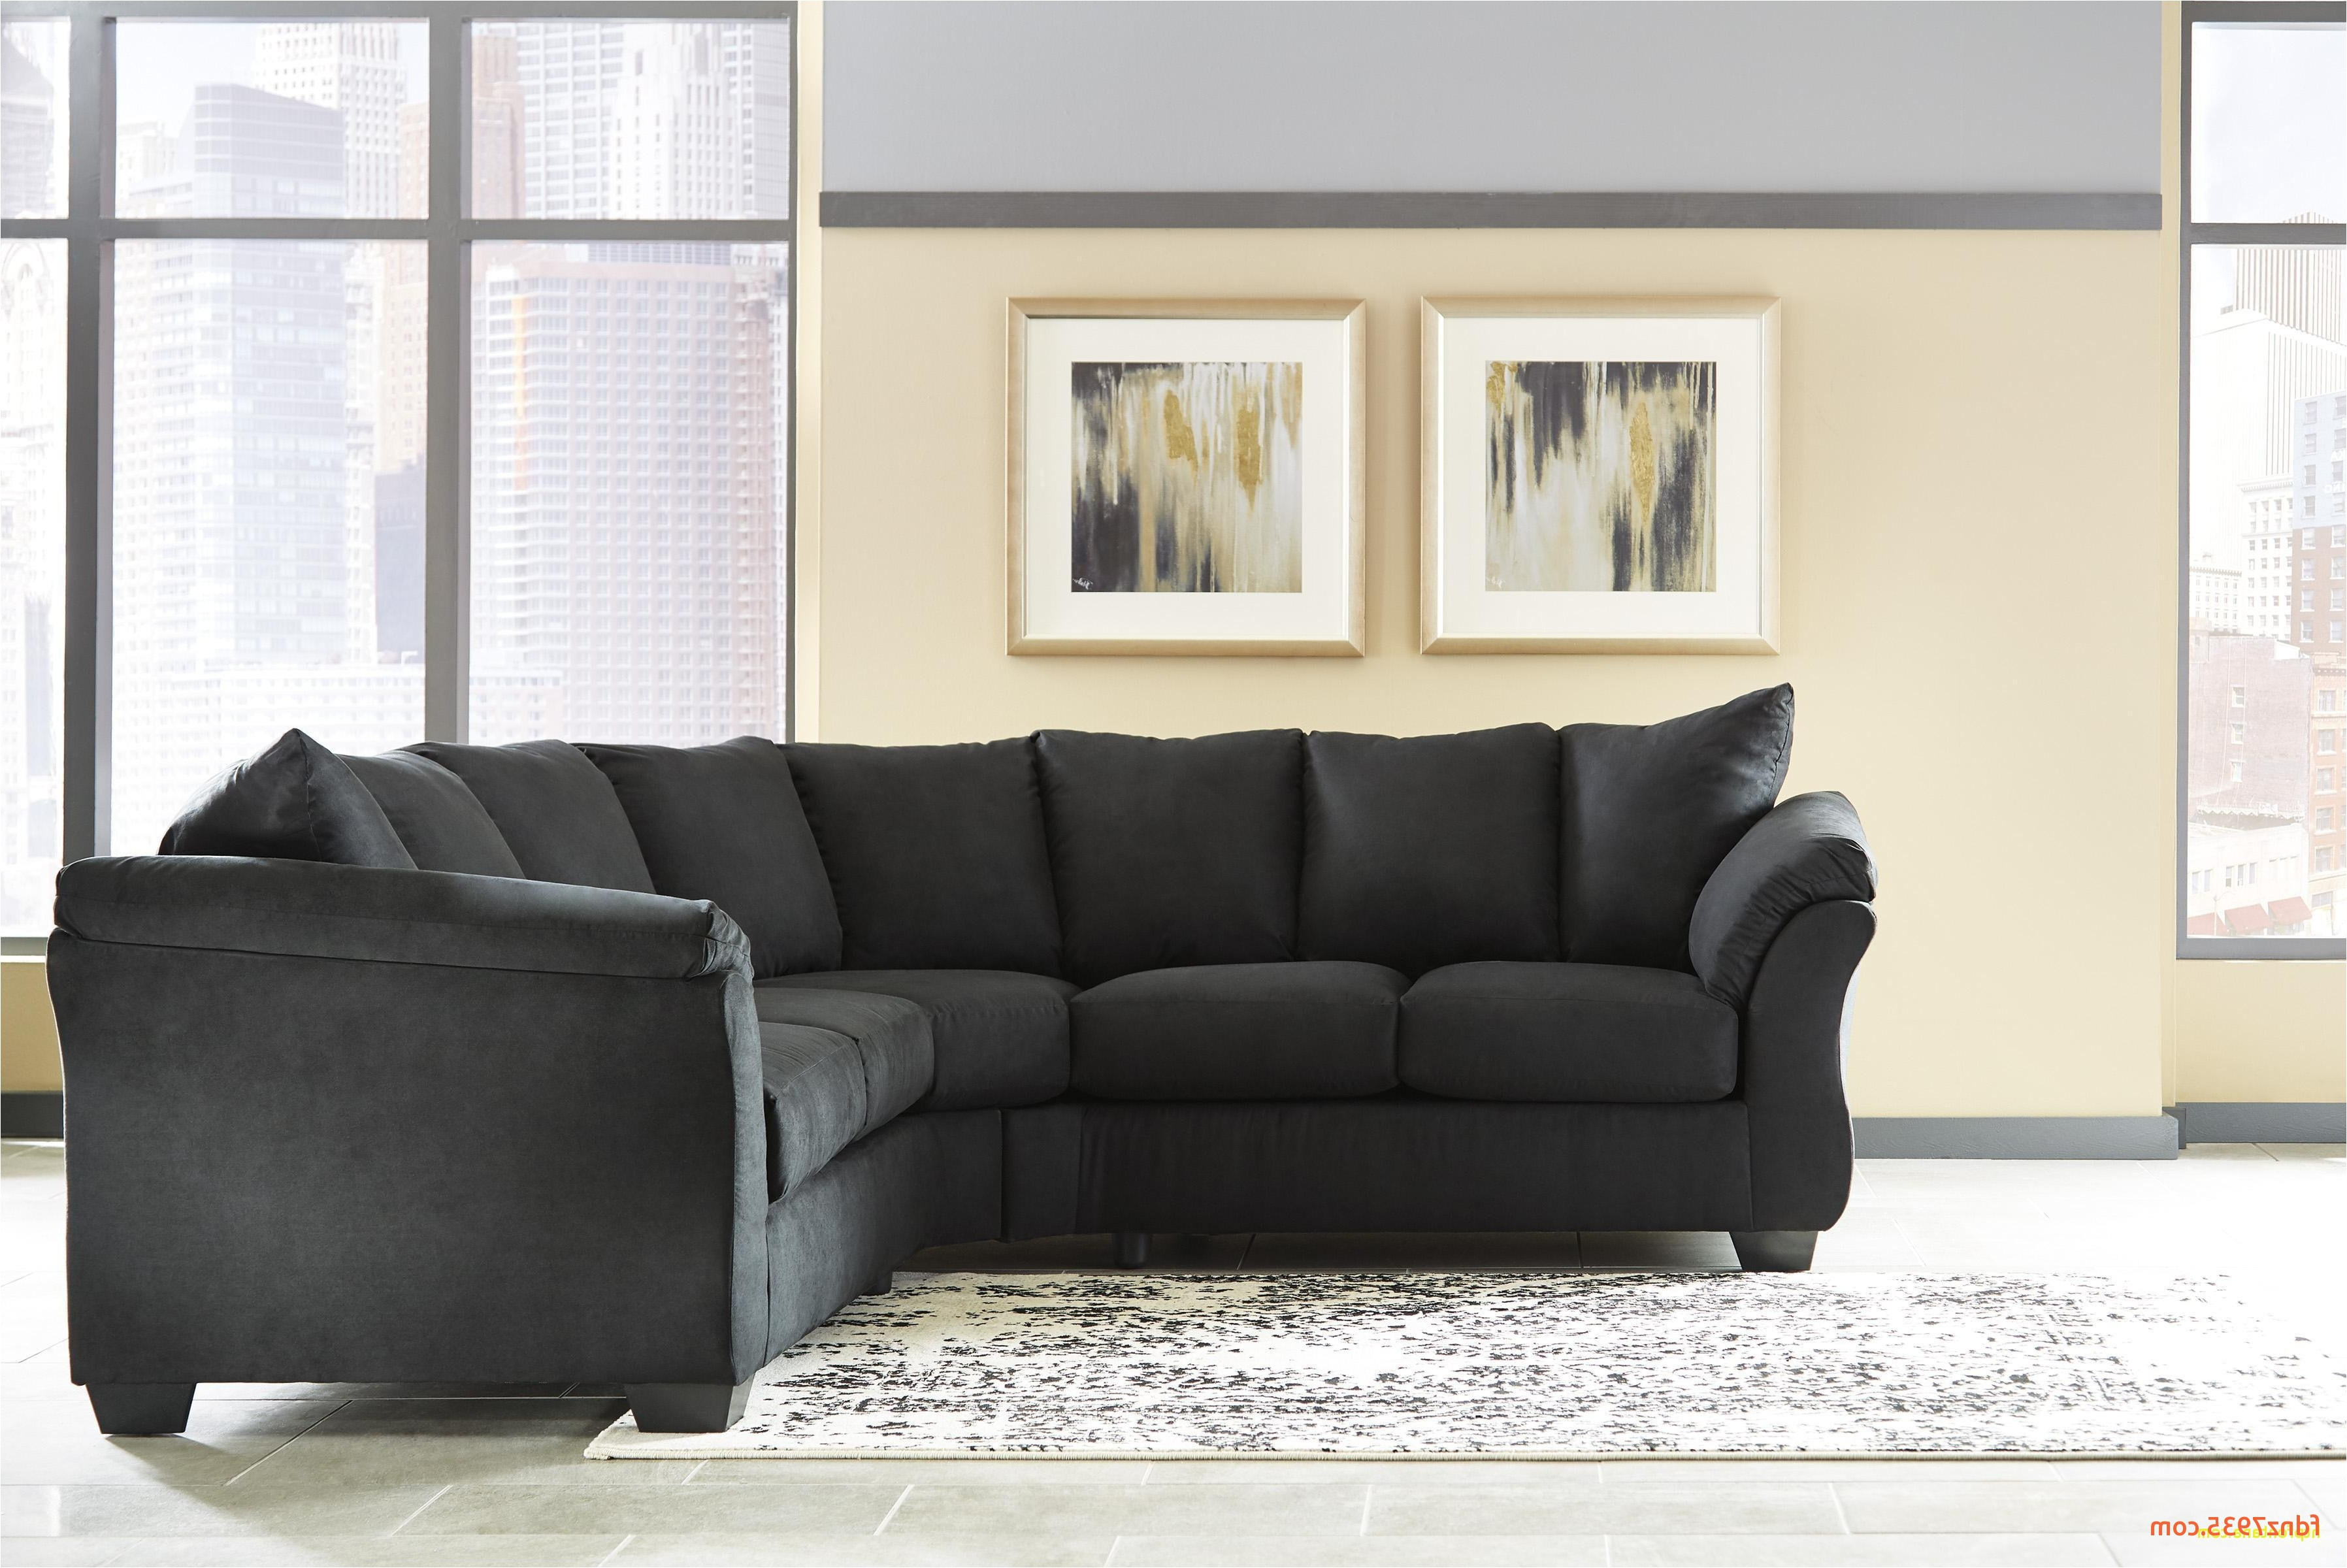 2019 Tenny Dark Grey 2 Piece Right Facing Chaise Sectionals With 2 Headrest Intended For Stylish Casual Classic Steel Piece Sectional Sofa Denali Rc (View 5 of 20)